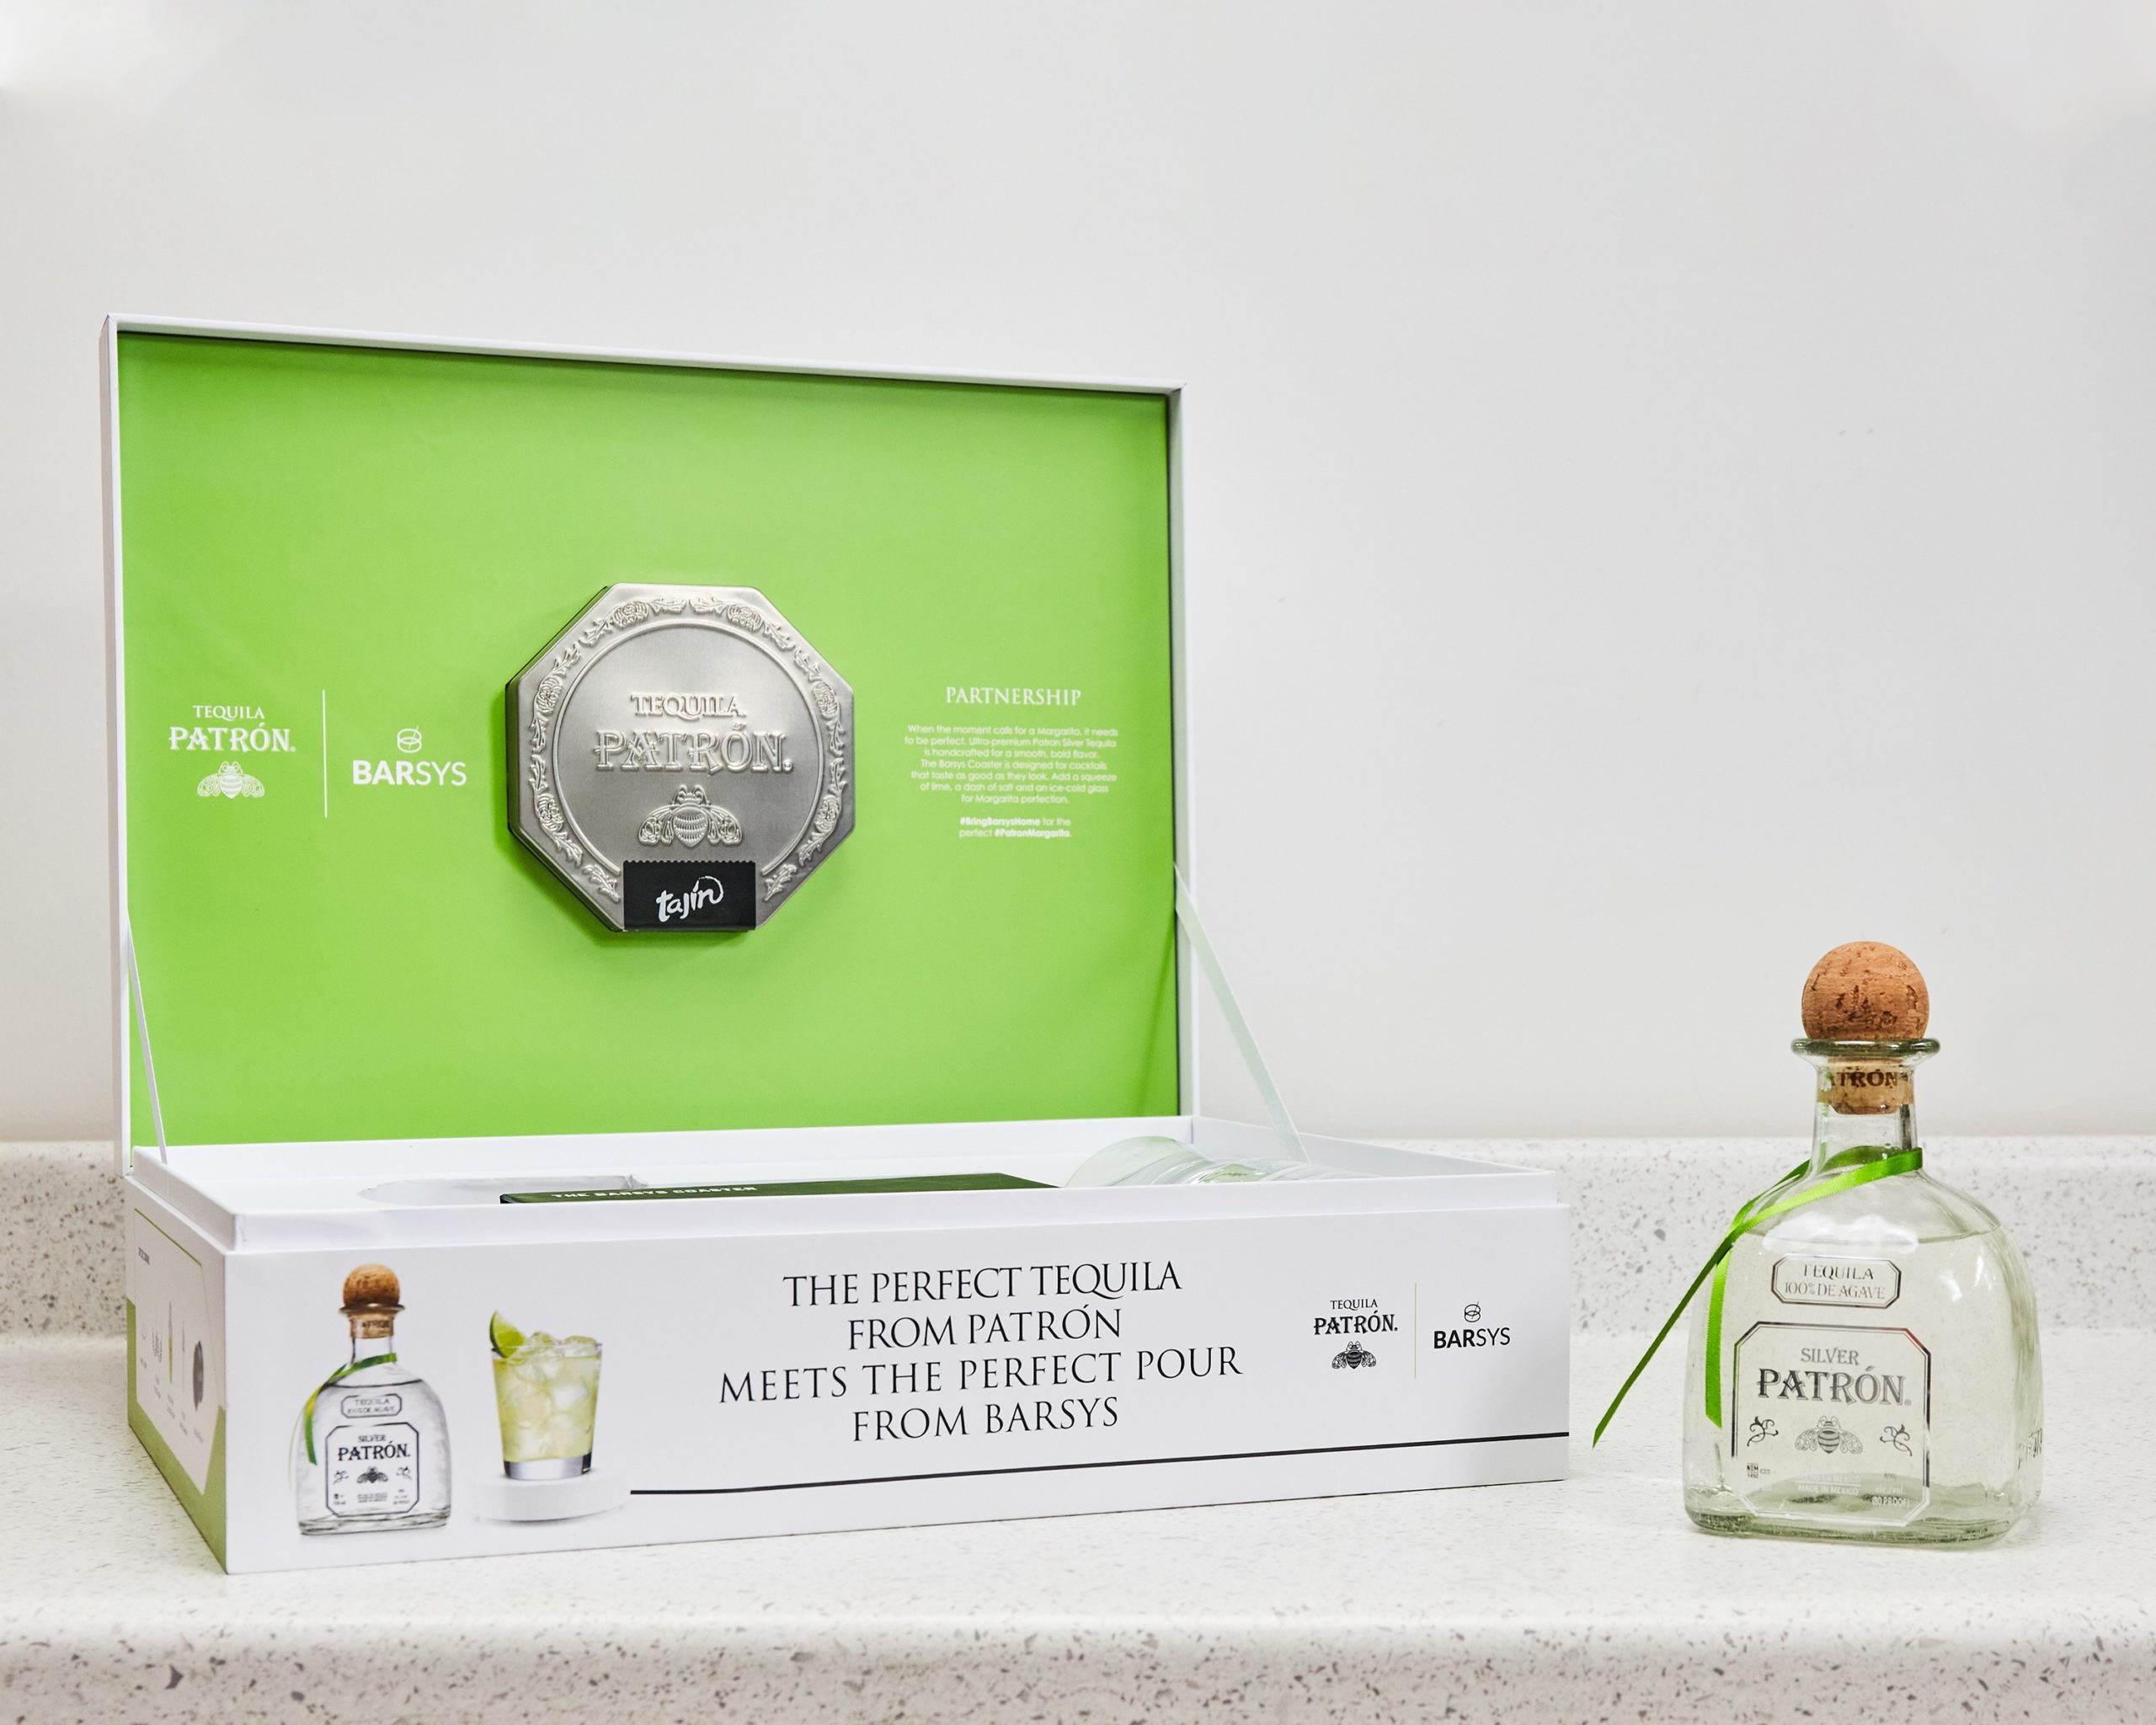 PATRÓN Margarita Smart Coaster by Barsys turns cocktail lovers into expert bartenders 16